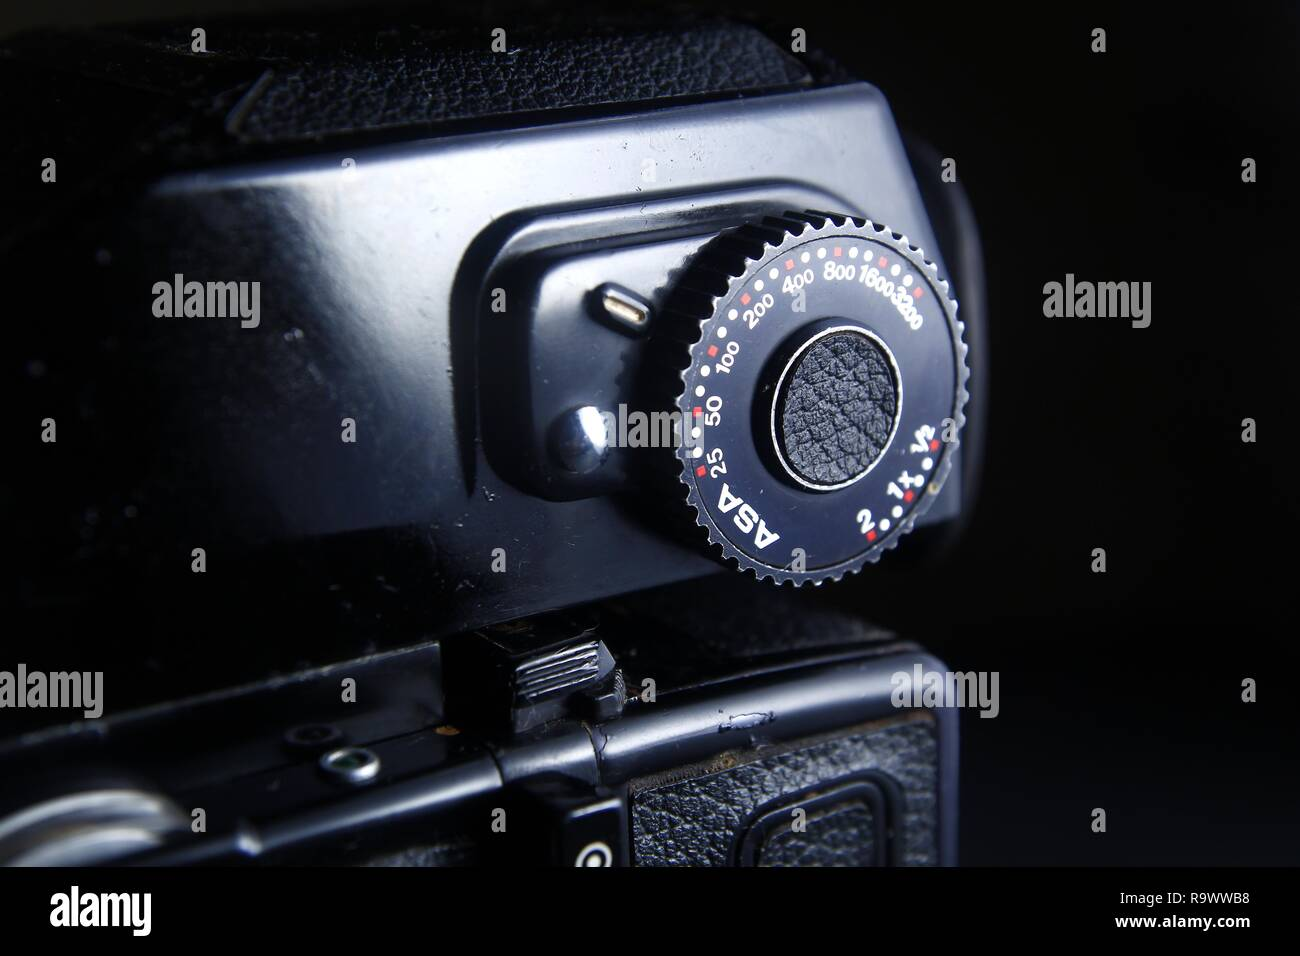 Close up shot of the ISO or ASA rating and exposure compensation dial on an eye level finder of a vintage medium format film camera. - Stock Image